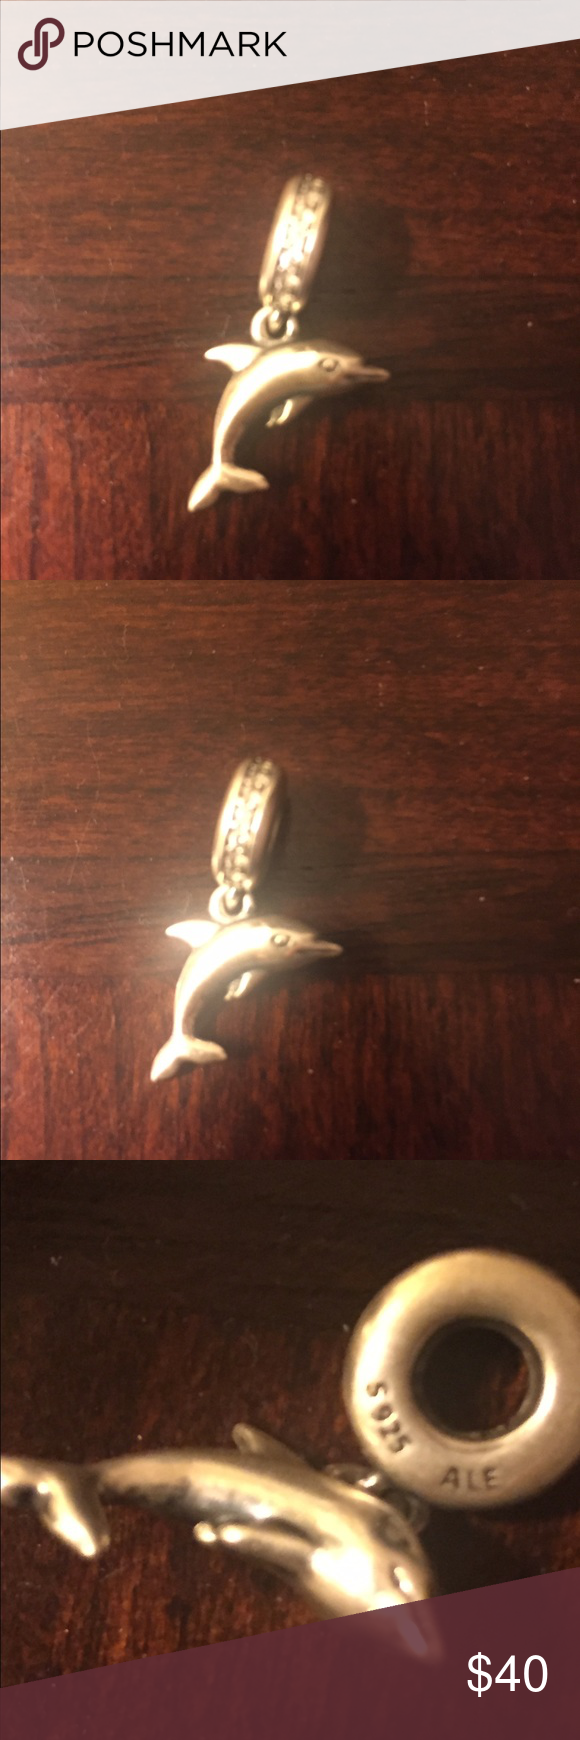 Authentic Pandora Playful Dolphin Charm Authentic Pandora Sterling Silver Playful Dolphin Charm. It is in excellent condition!! Very cute!! Pandora Jewelry